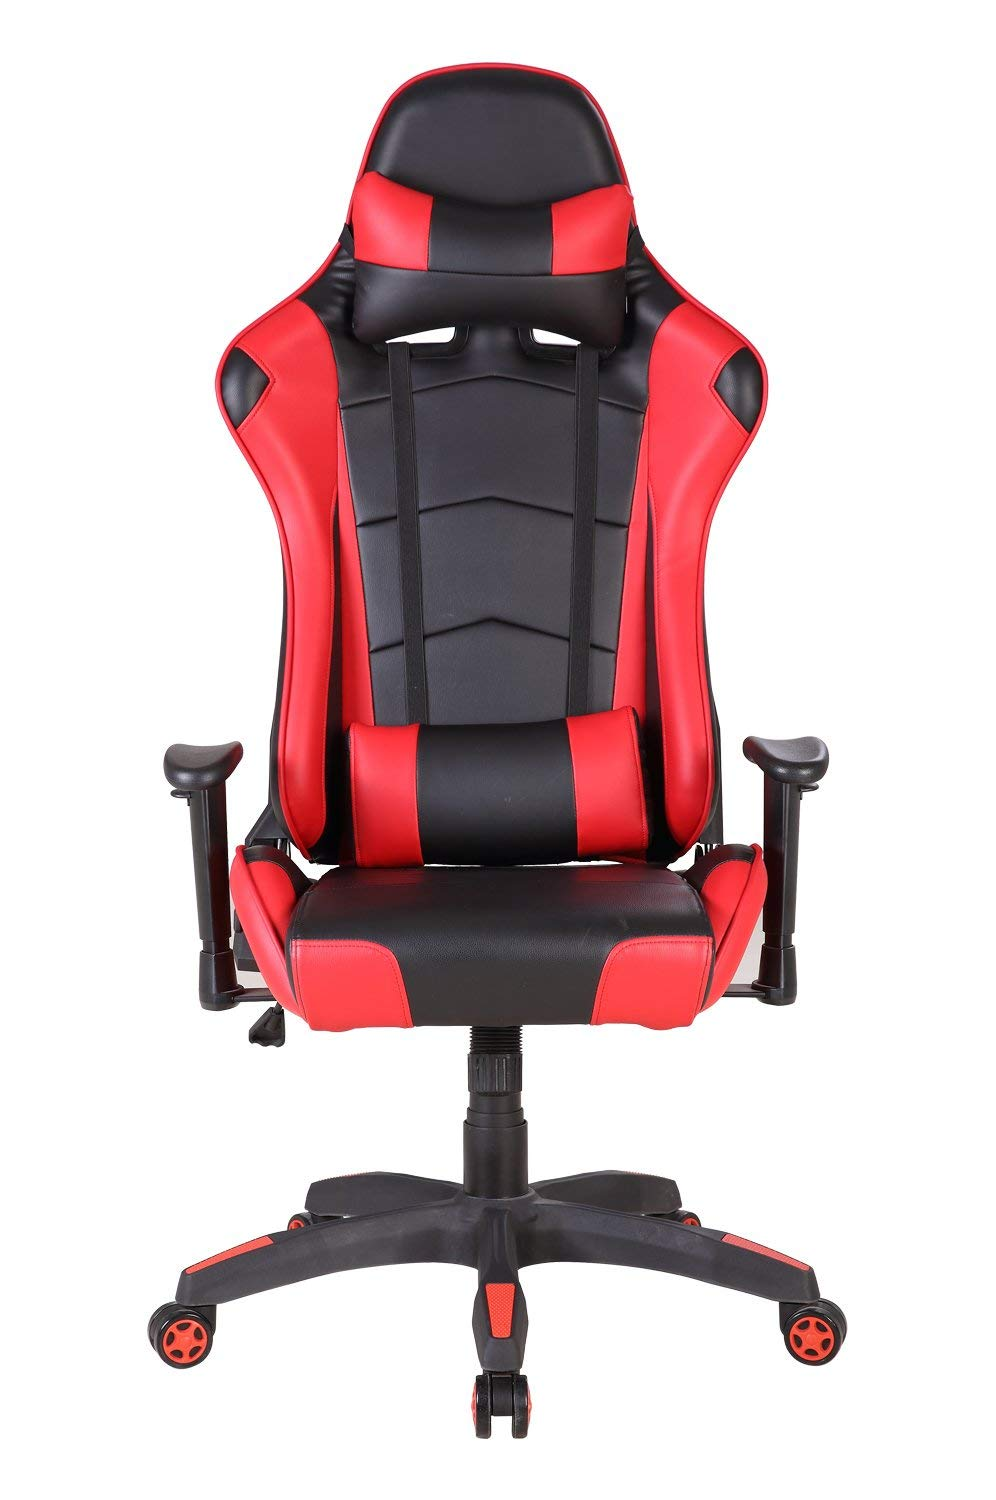 Racing Gaming Computer Executive Chair with High Back Reclining Tilt Office Chair Adjustable Lock PU Leather Swivel Task Chair